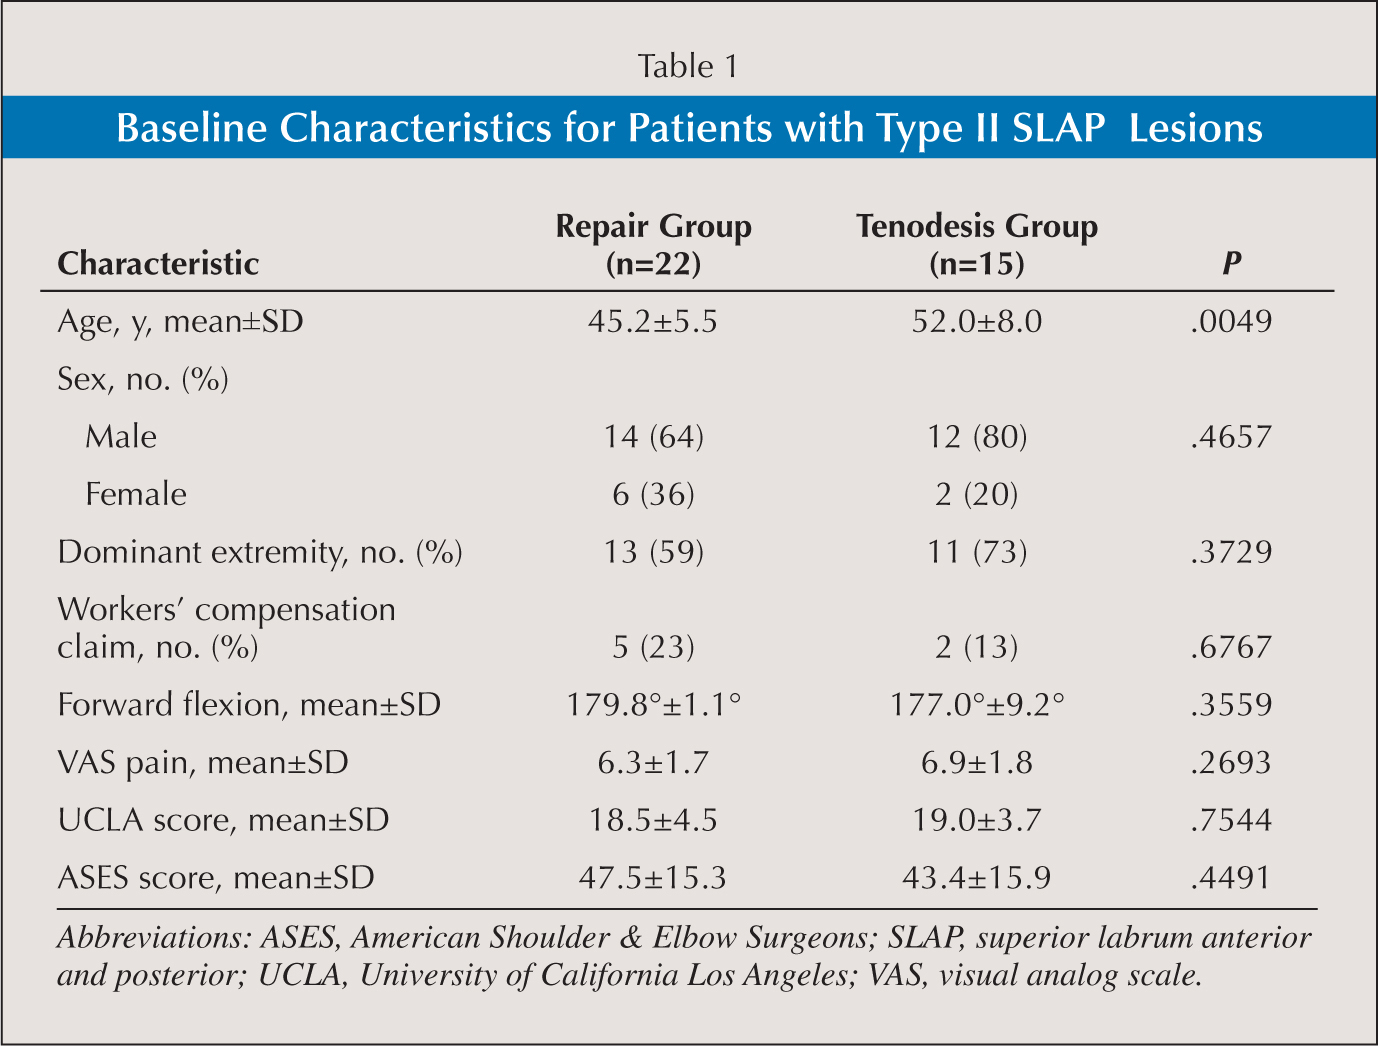 Baseline Characteristics for Patients with Type II SLAP Lesions